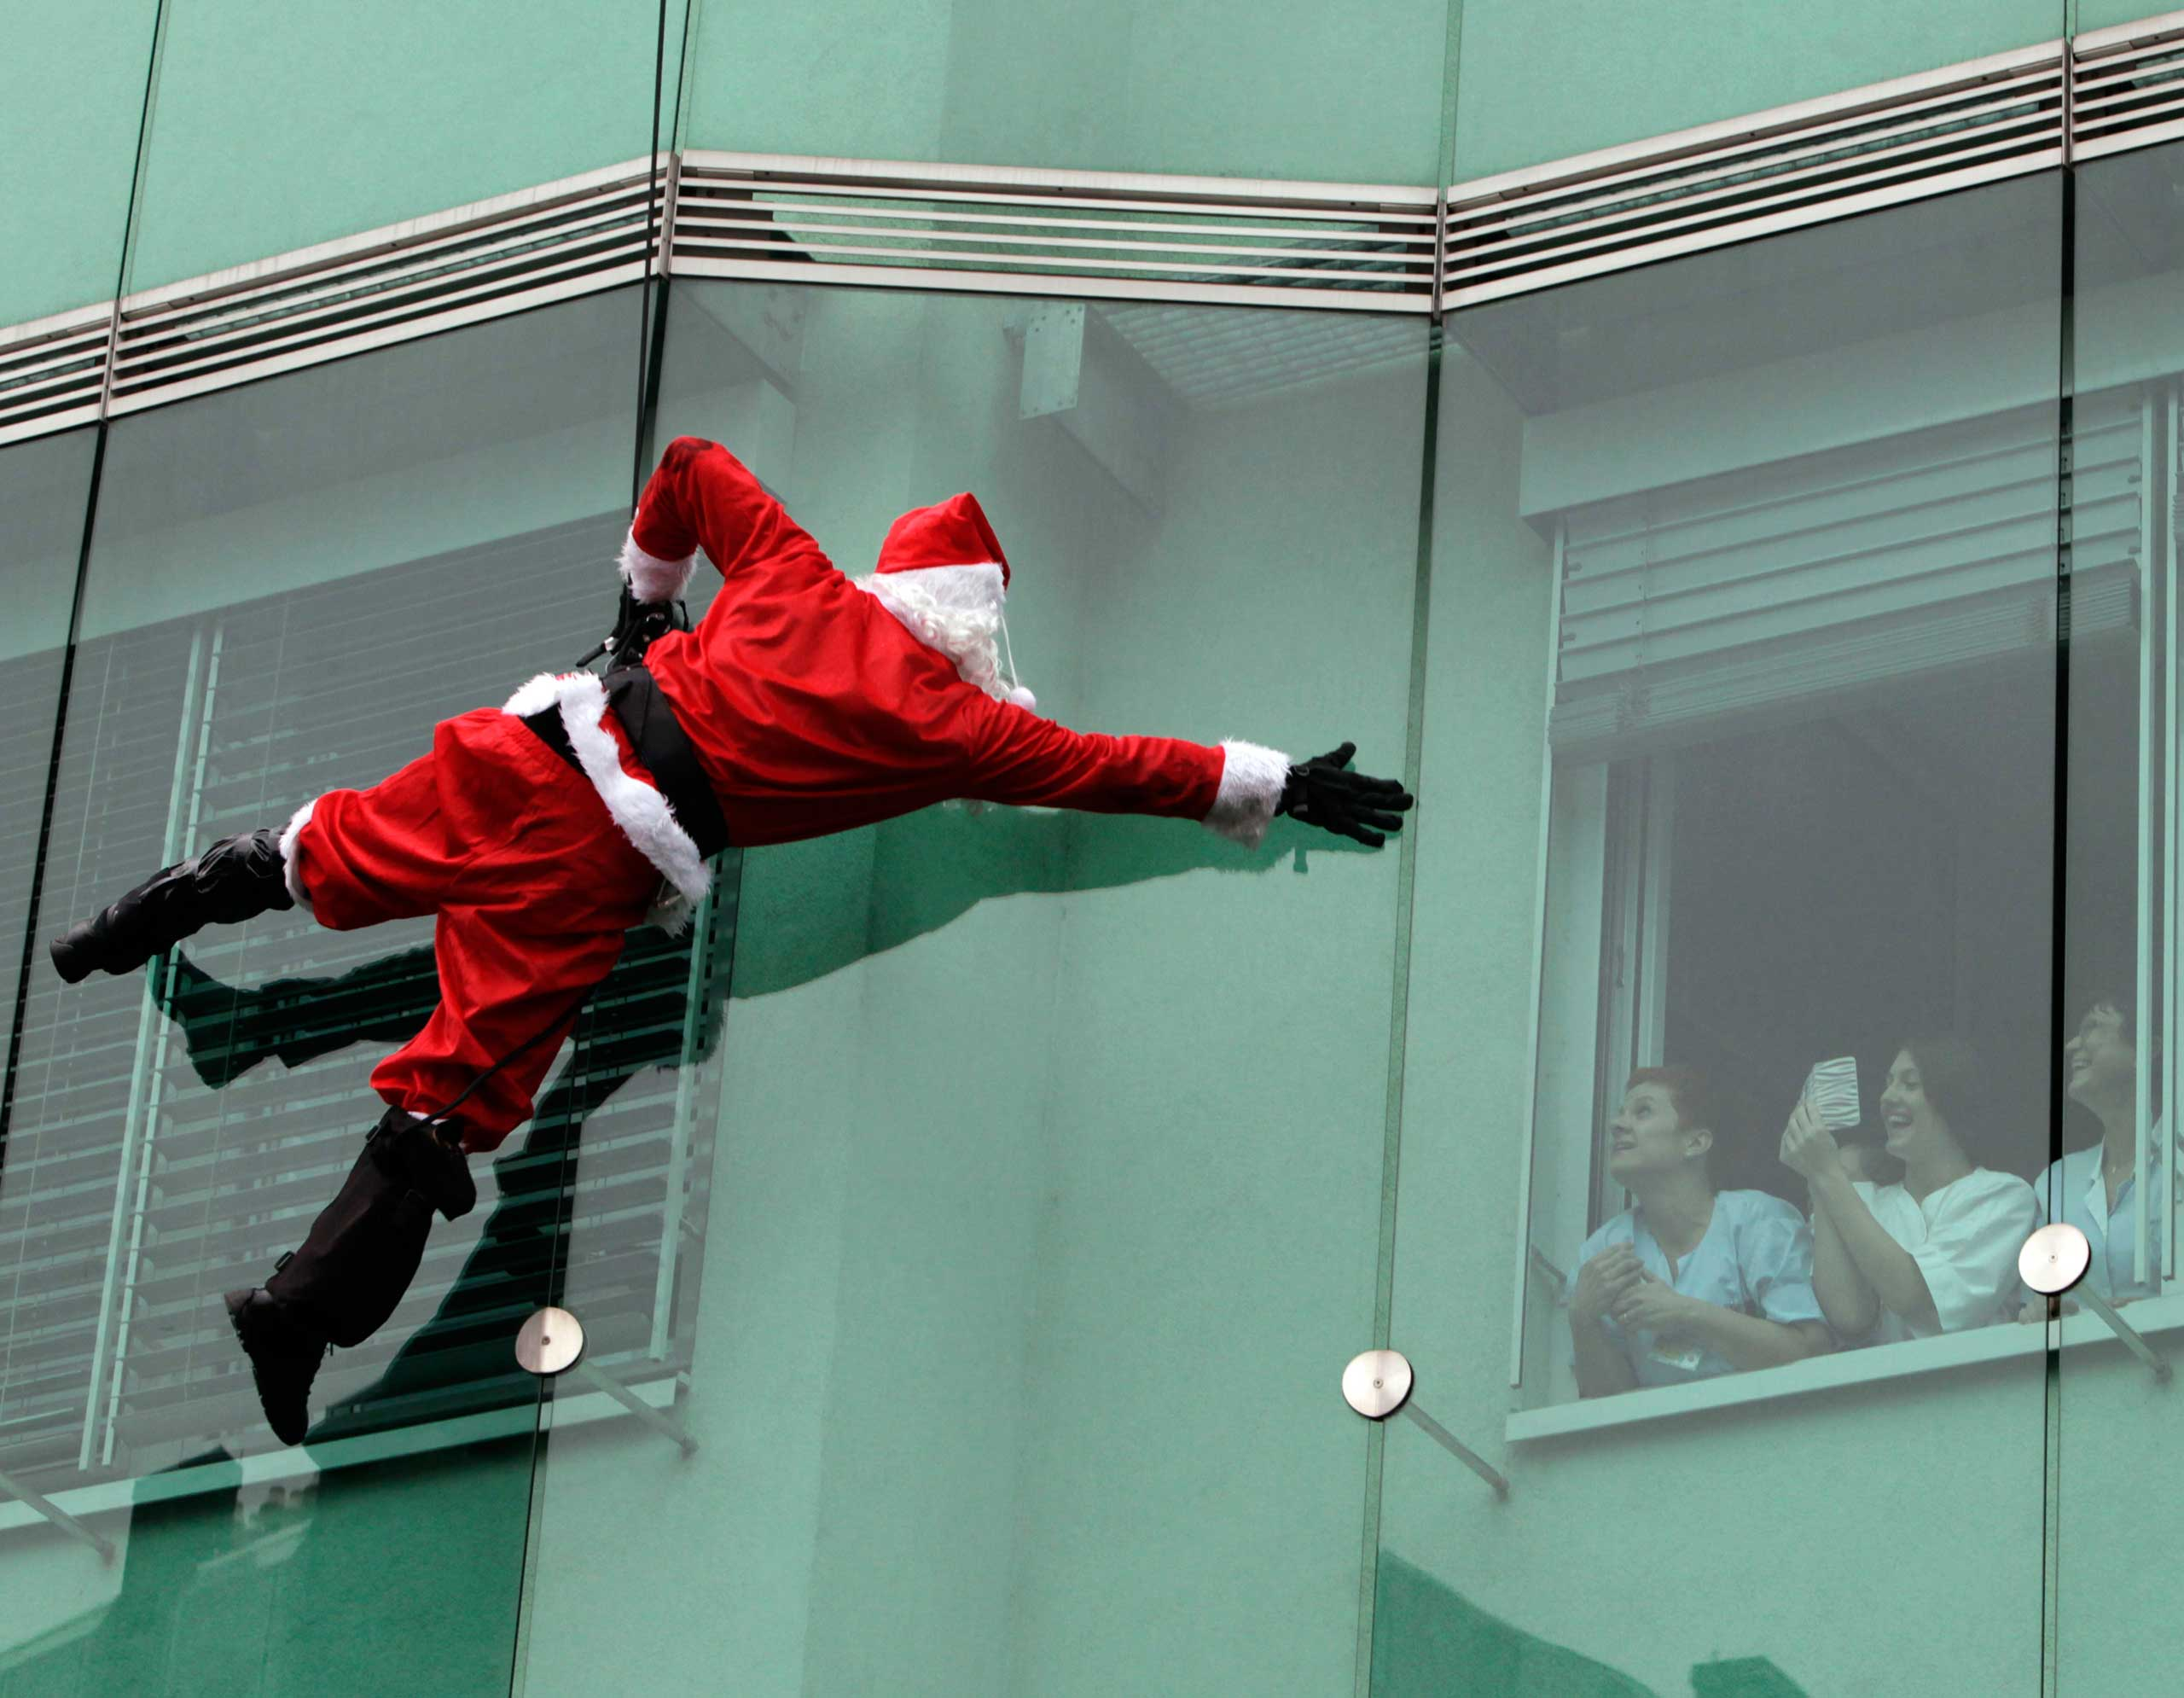 A member of the special police forces dressed as Santa Claus suit waves to staff as he descends from the roof of a pediatrics clinic in Ljubljana, SLovenia on Dec. 16, 2014.